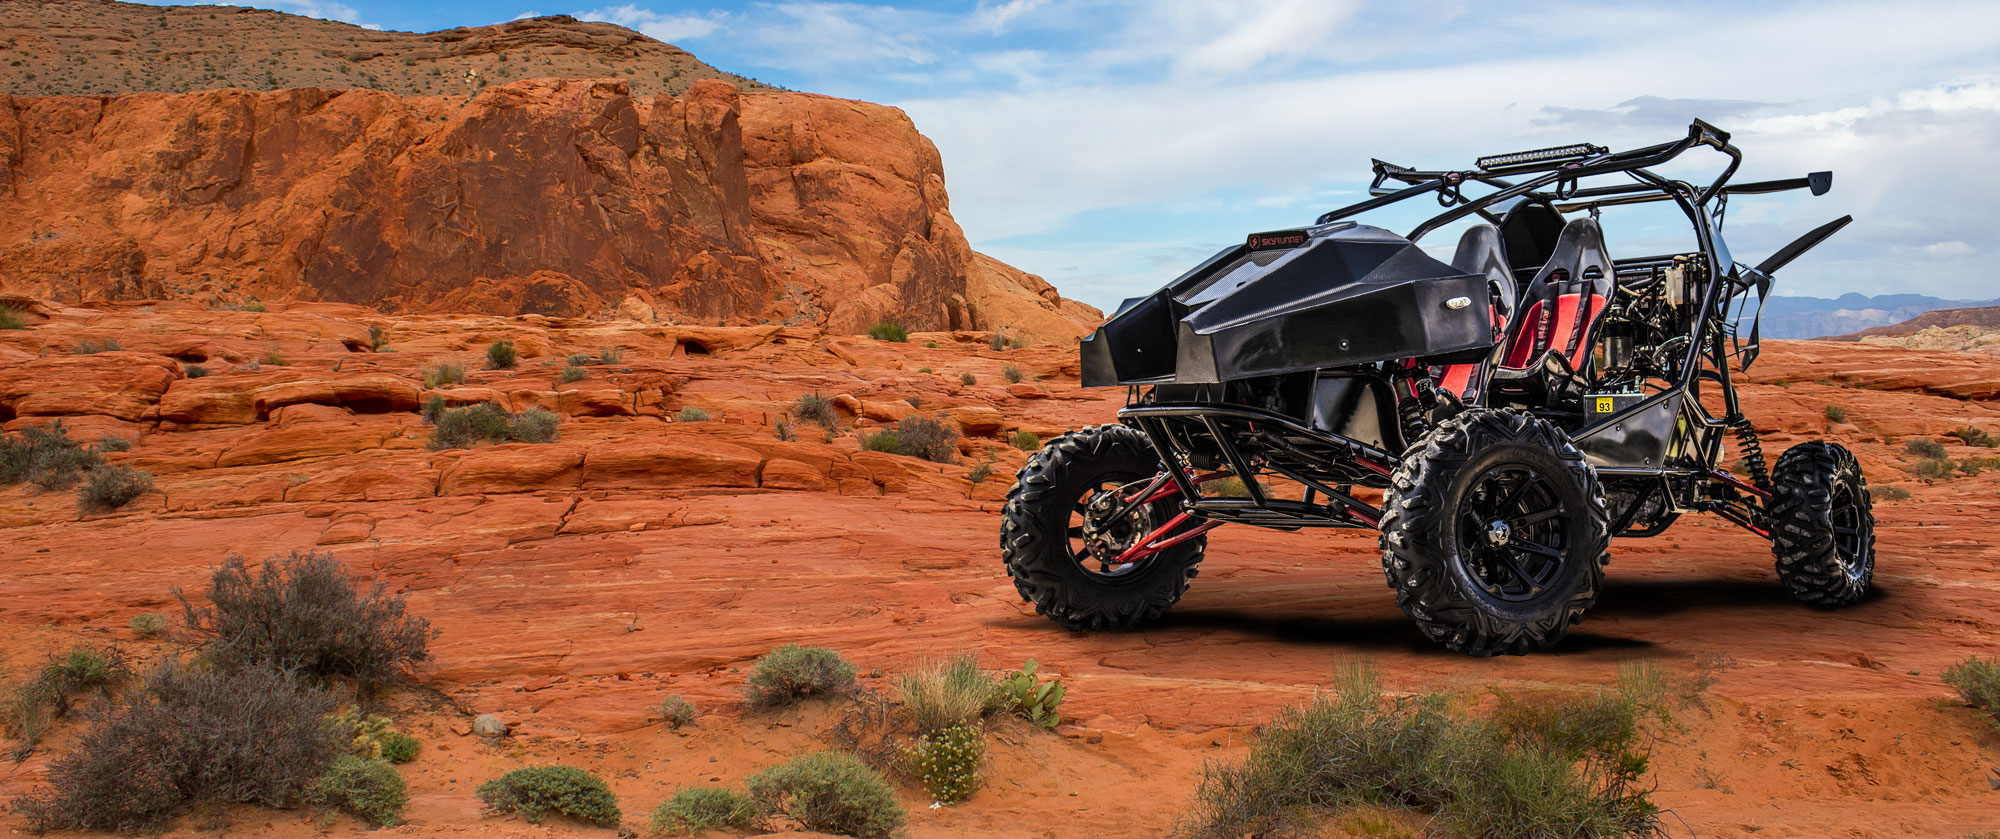 Skyrunner off-road flying buggy